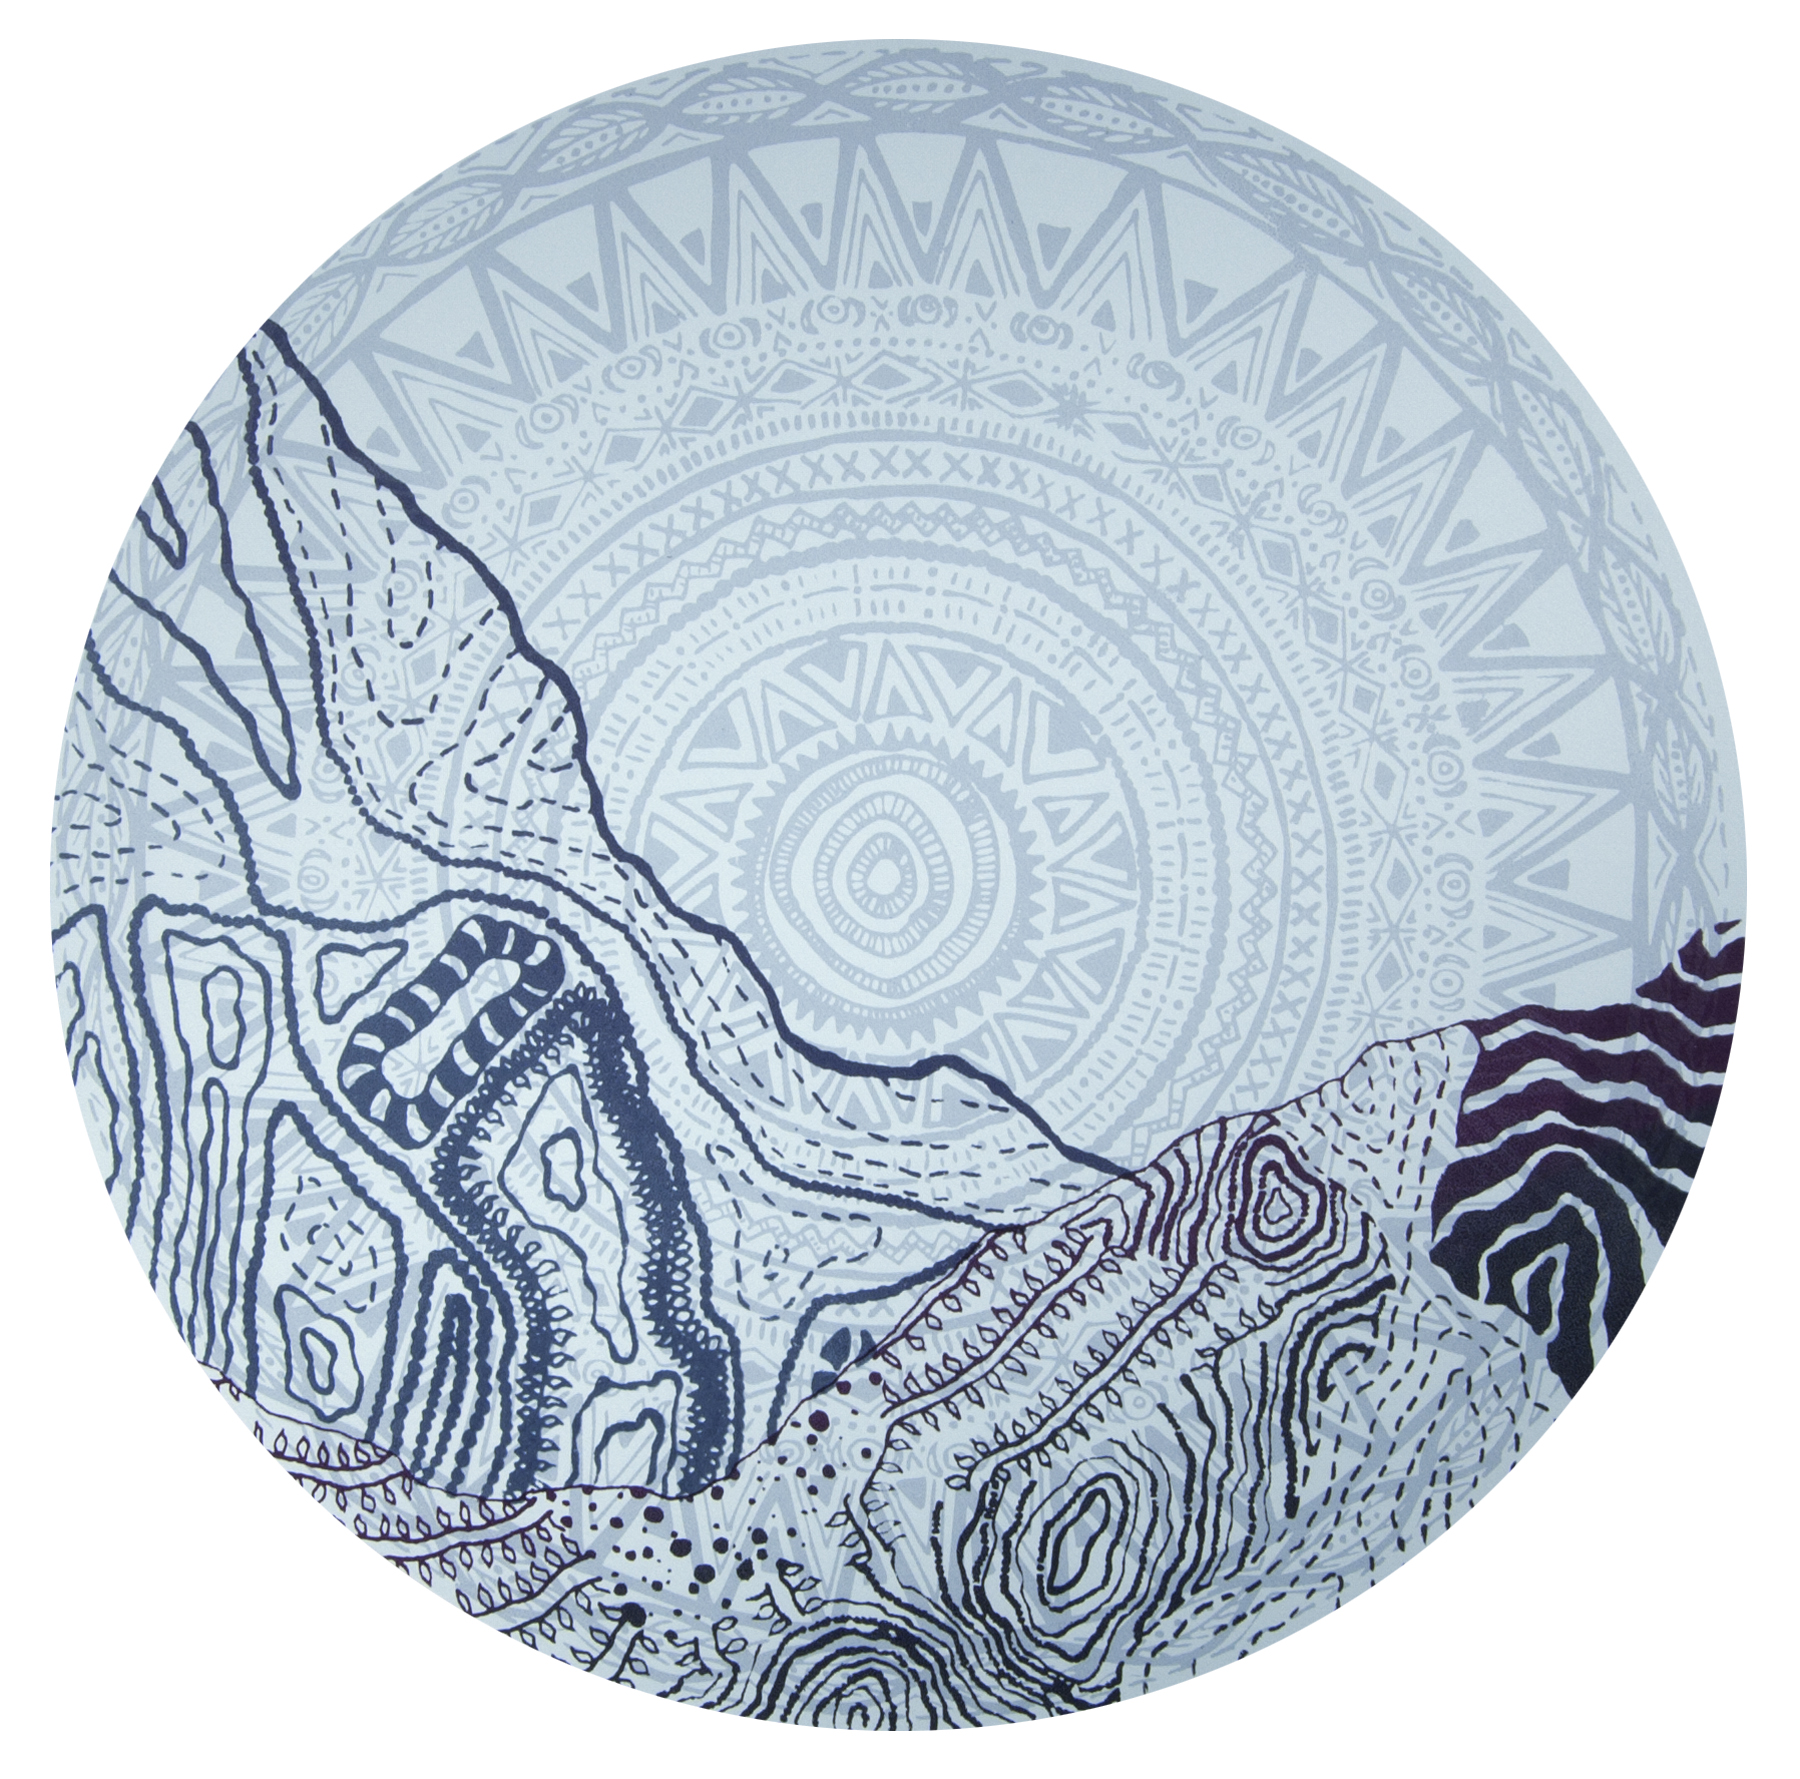 The mountains saved my soul , 14.5 inches diameter, screenprint on paper.